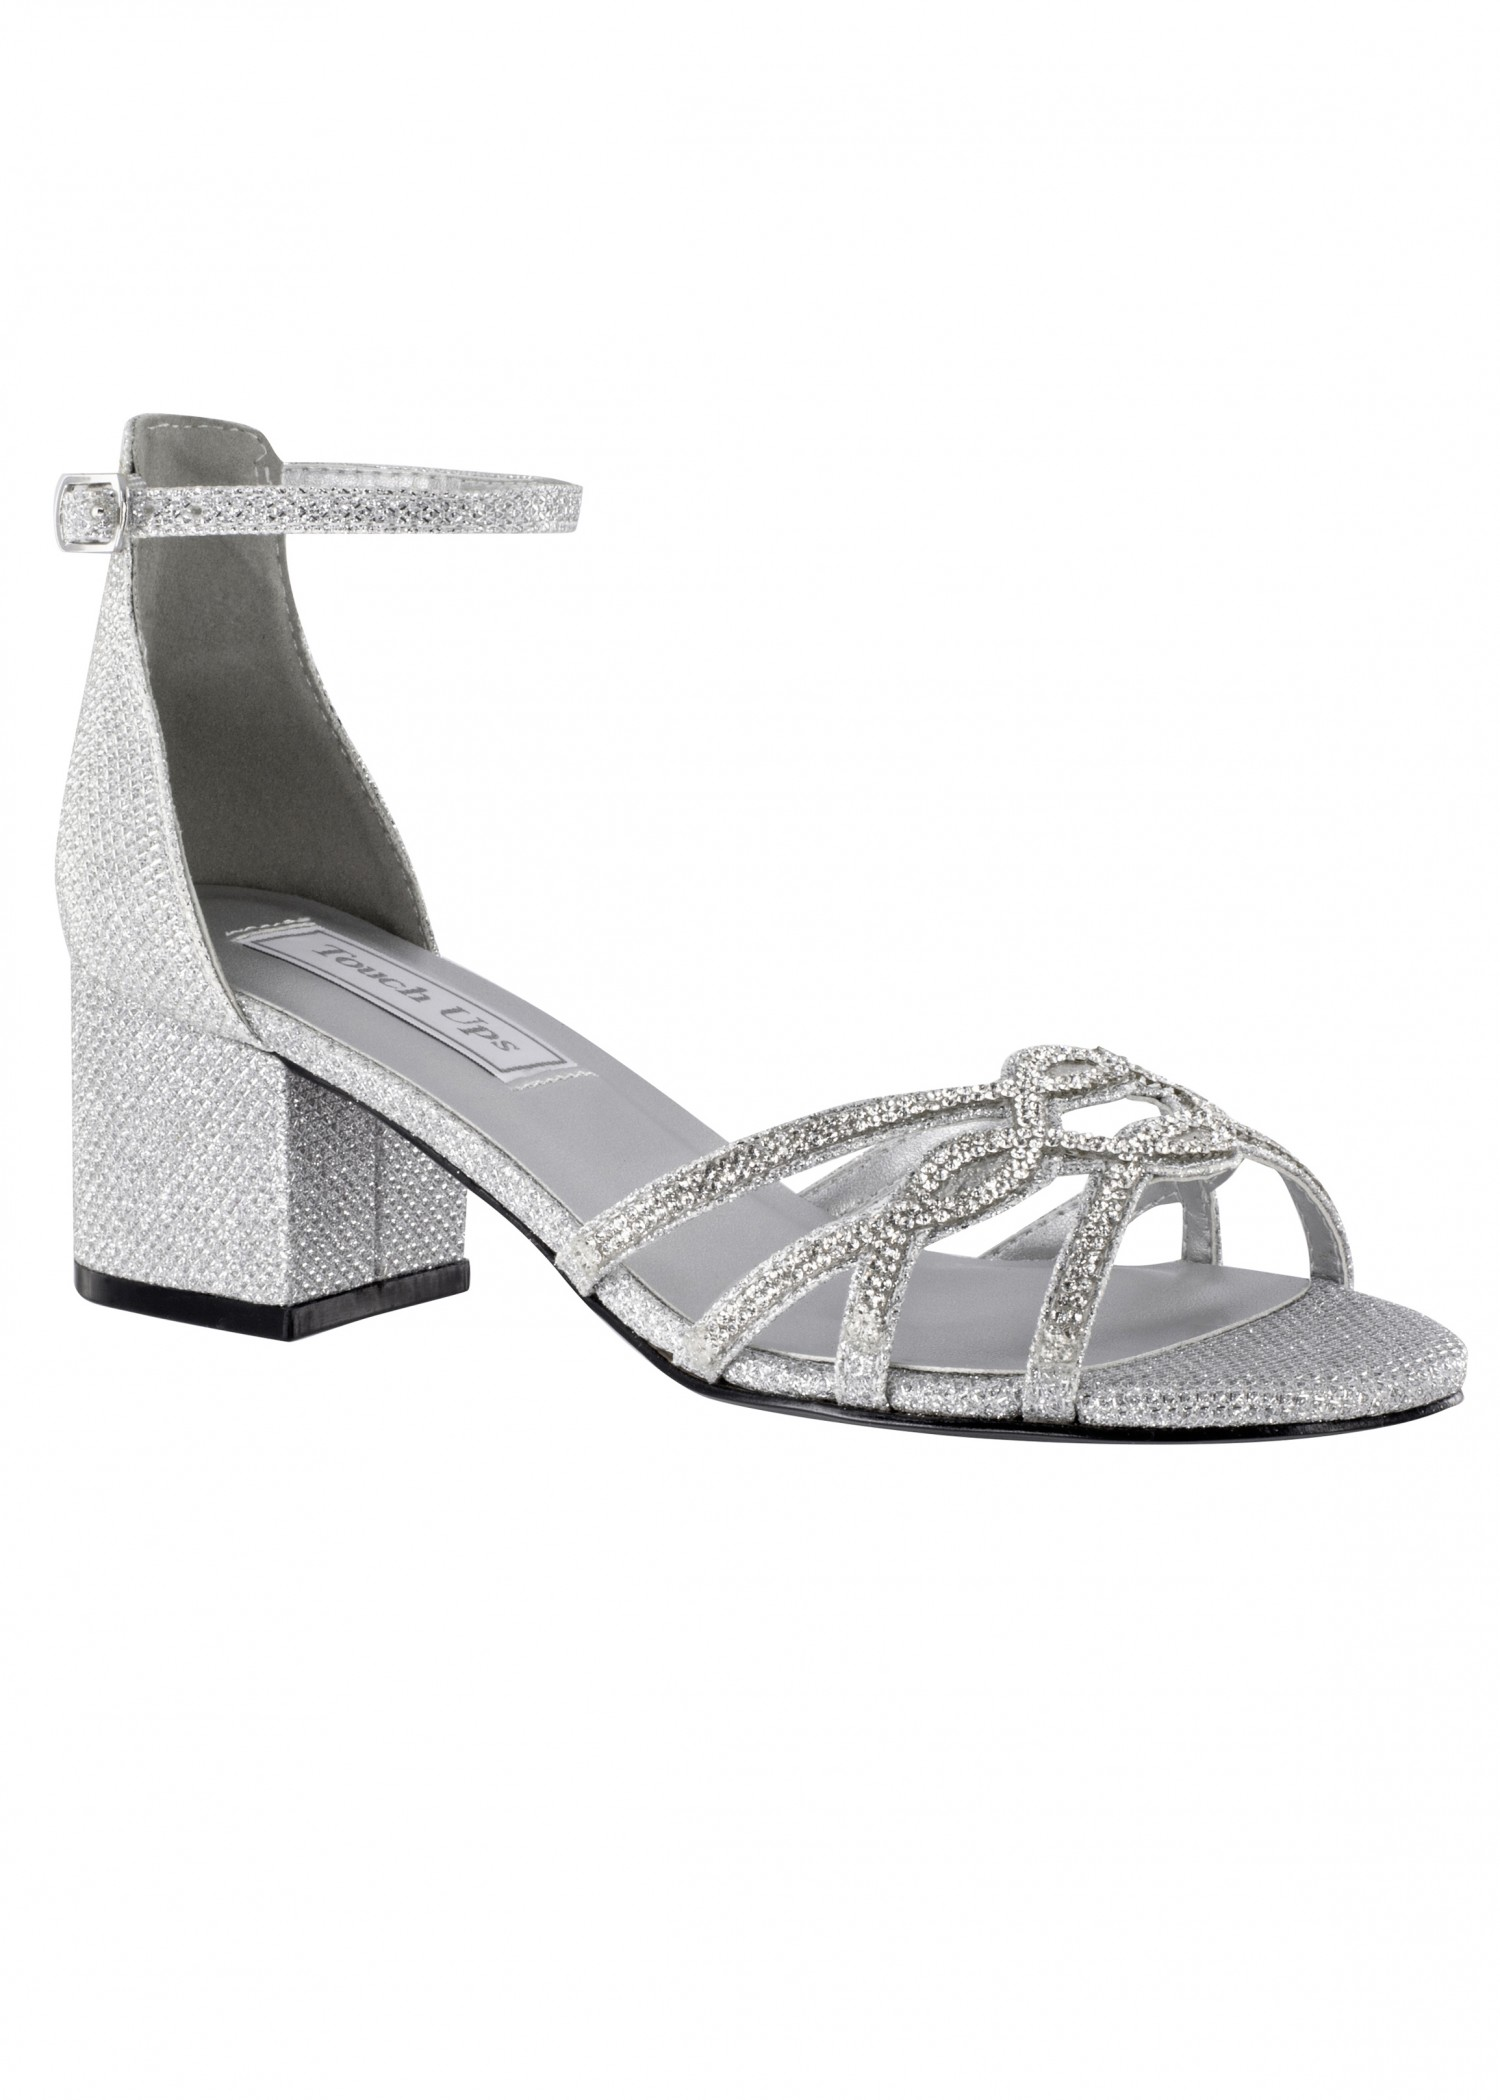 Zoey by Touch Ups Sparkling Block Heel Sandal